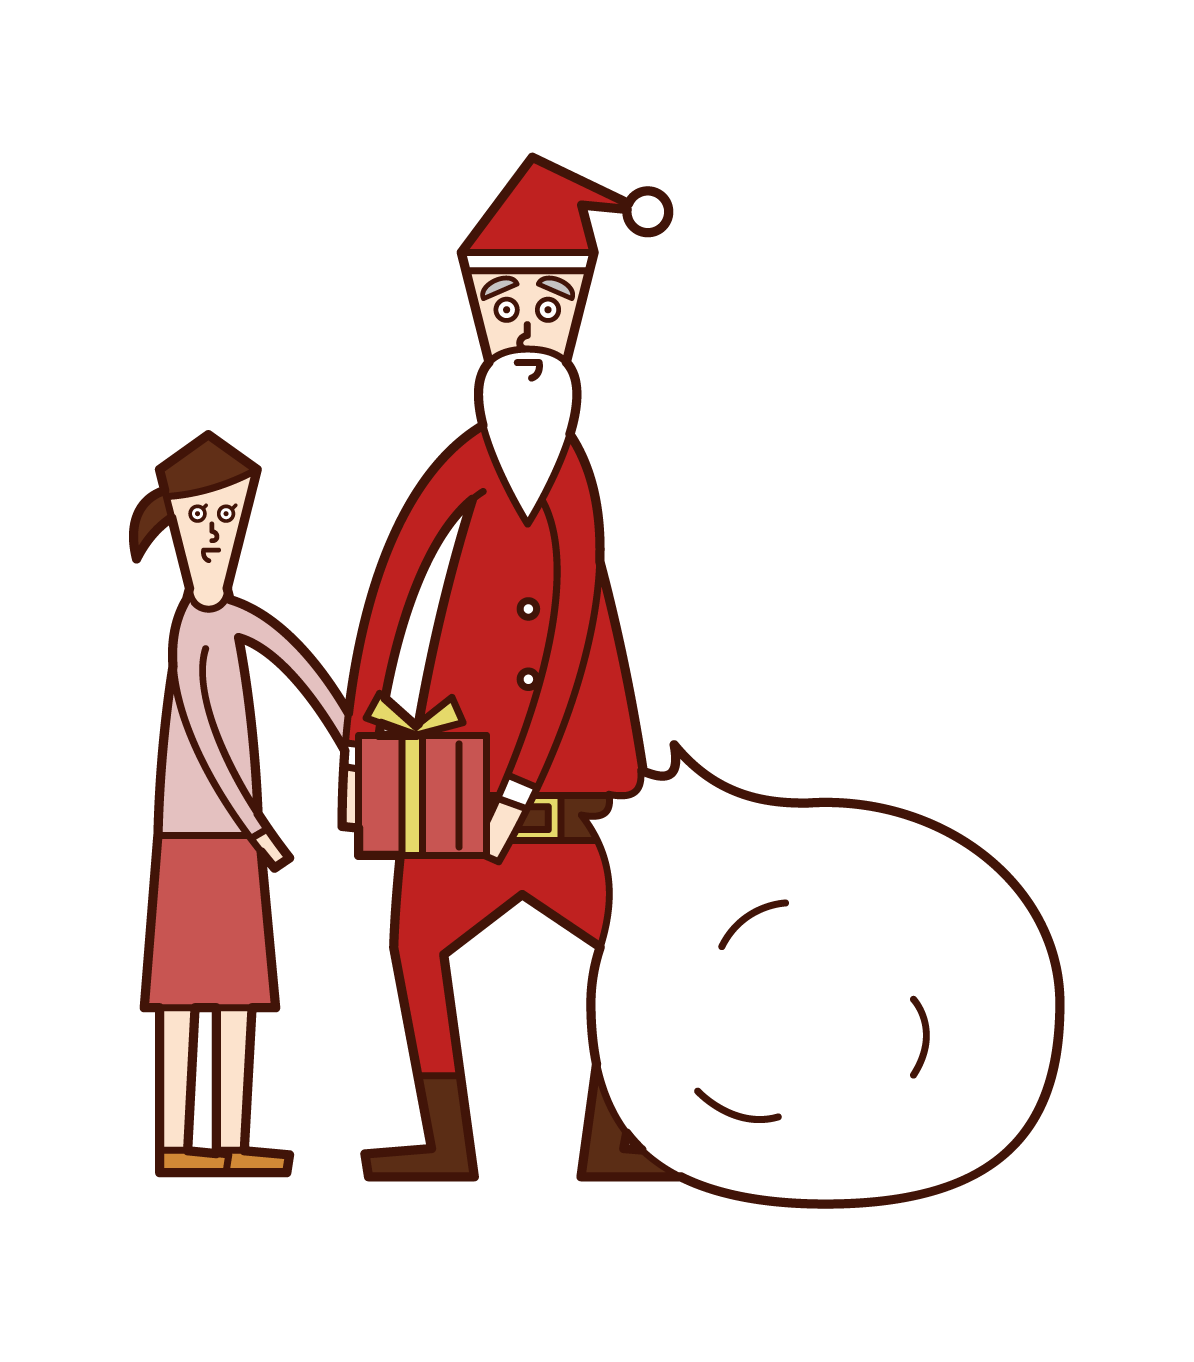 Illustration of Santa Claus giving presents to children